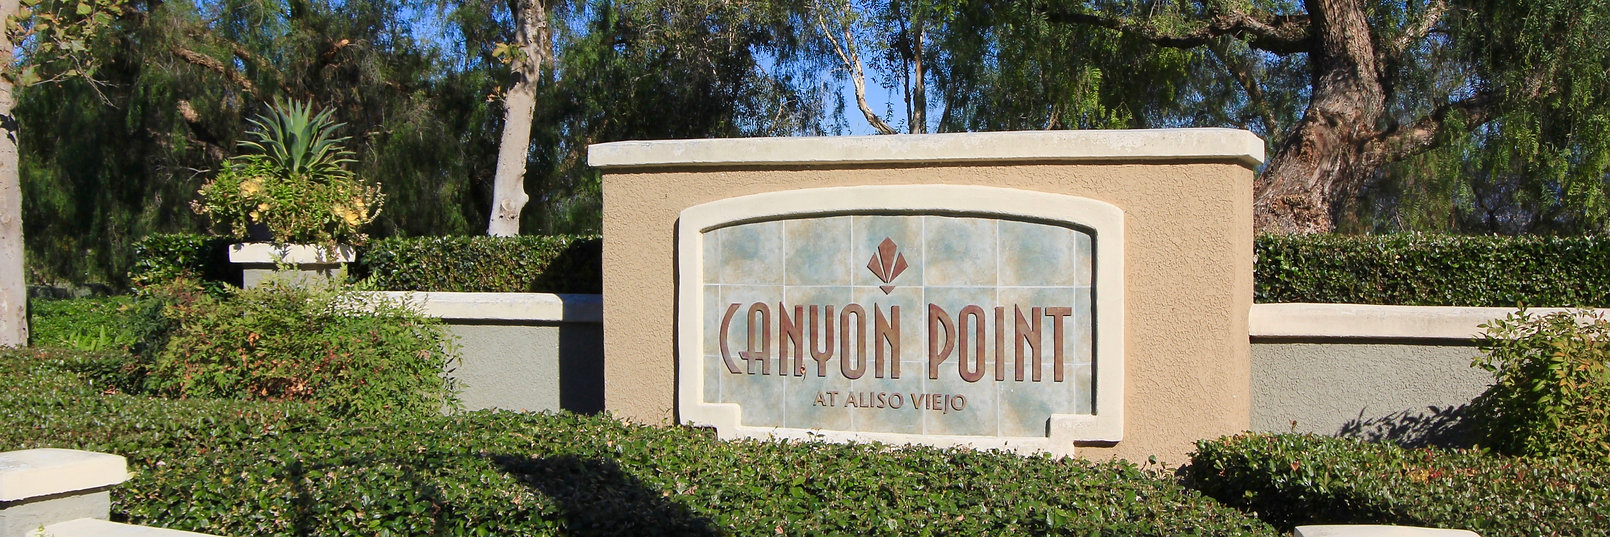 Canyon-Point-Marquee.jpg